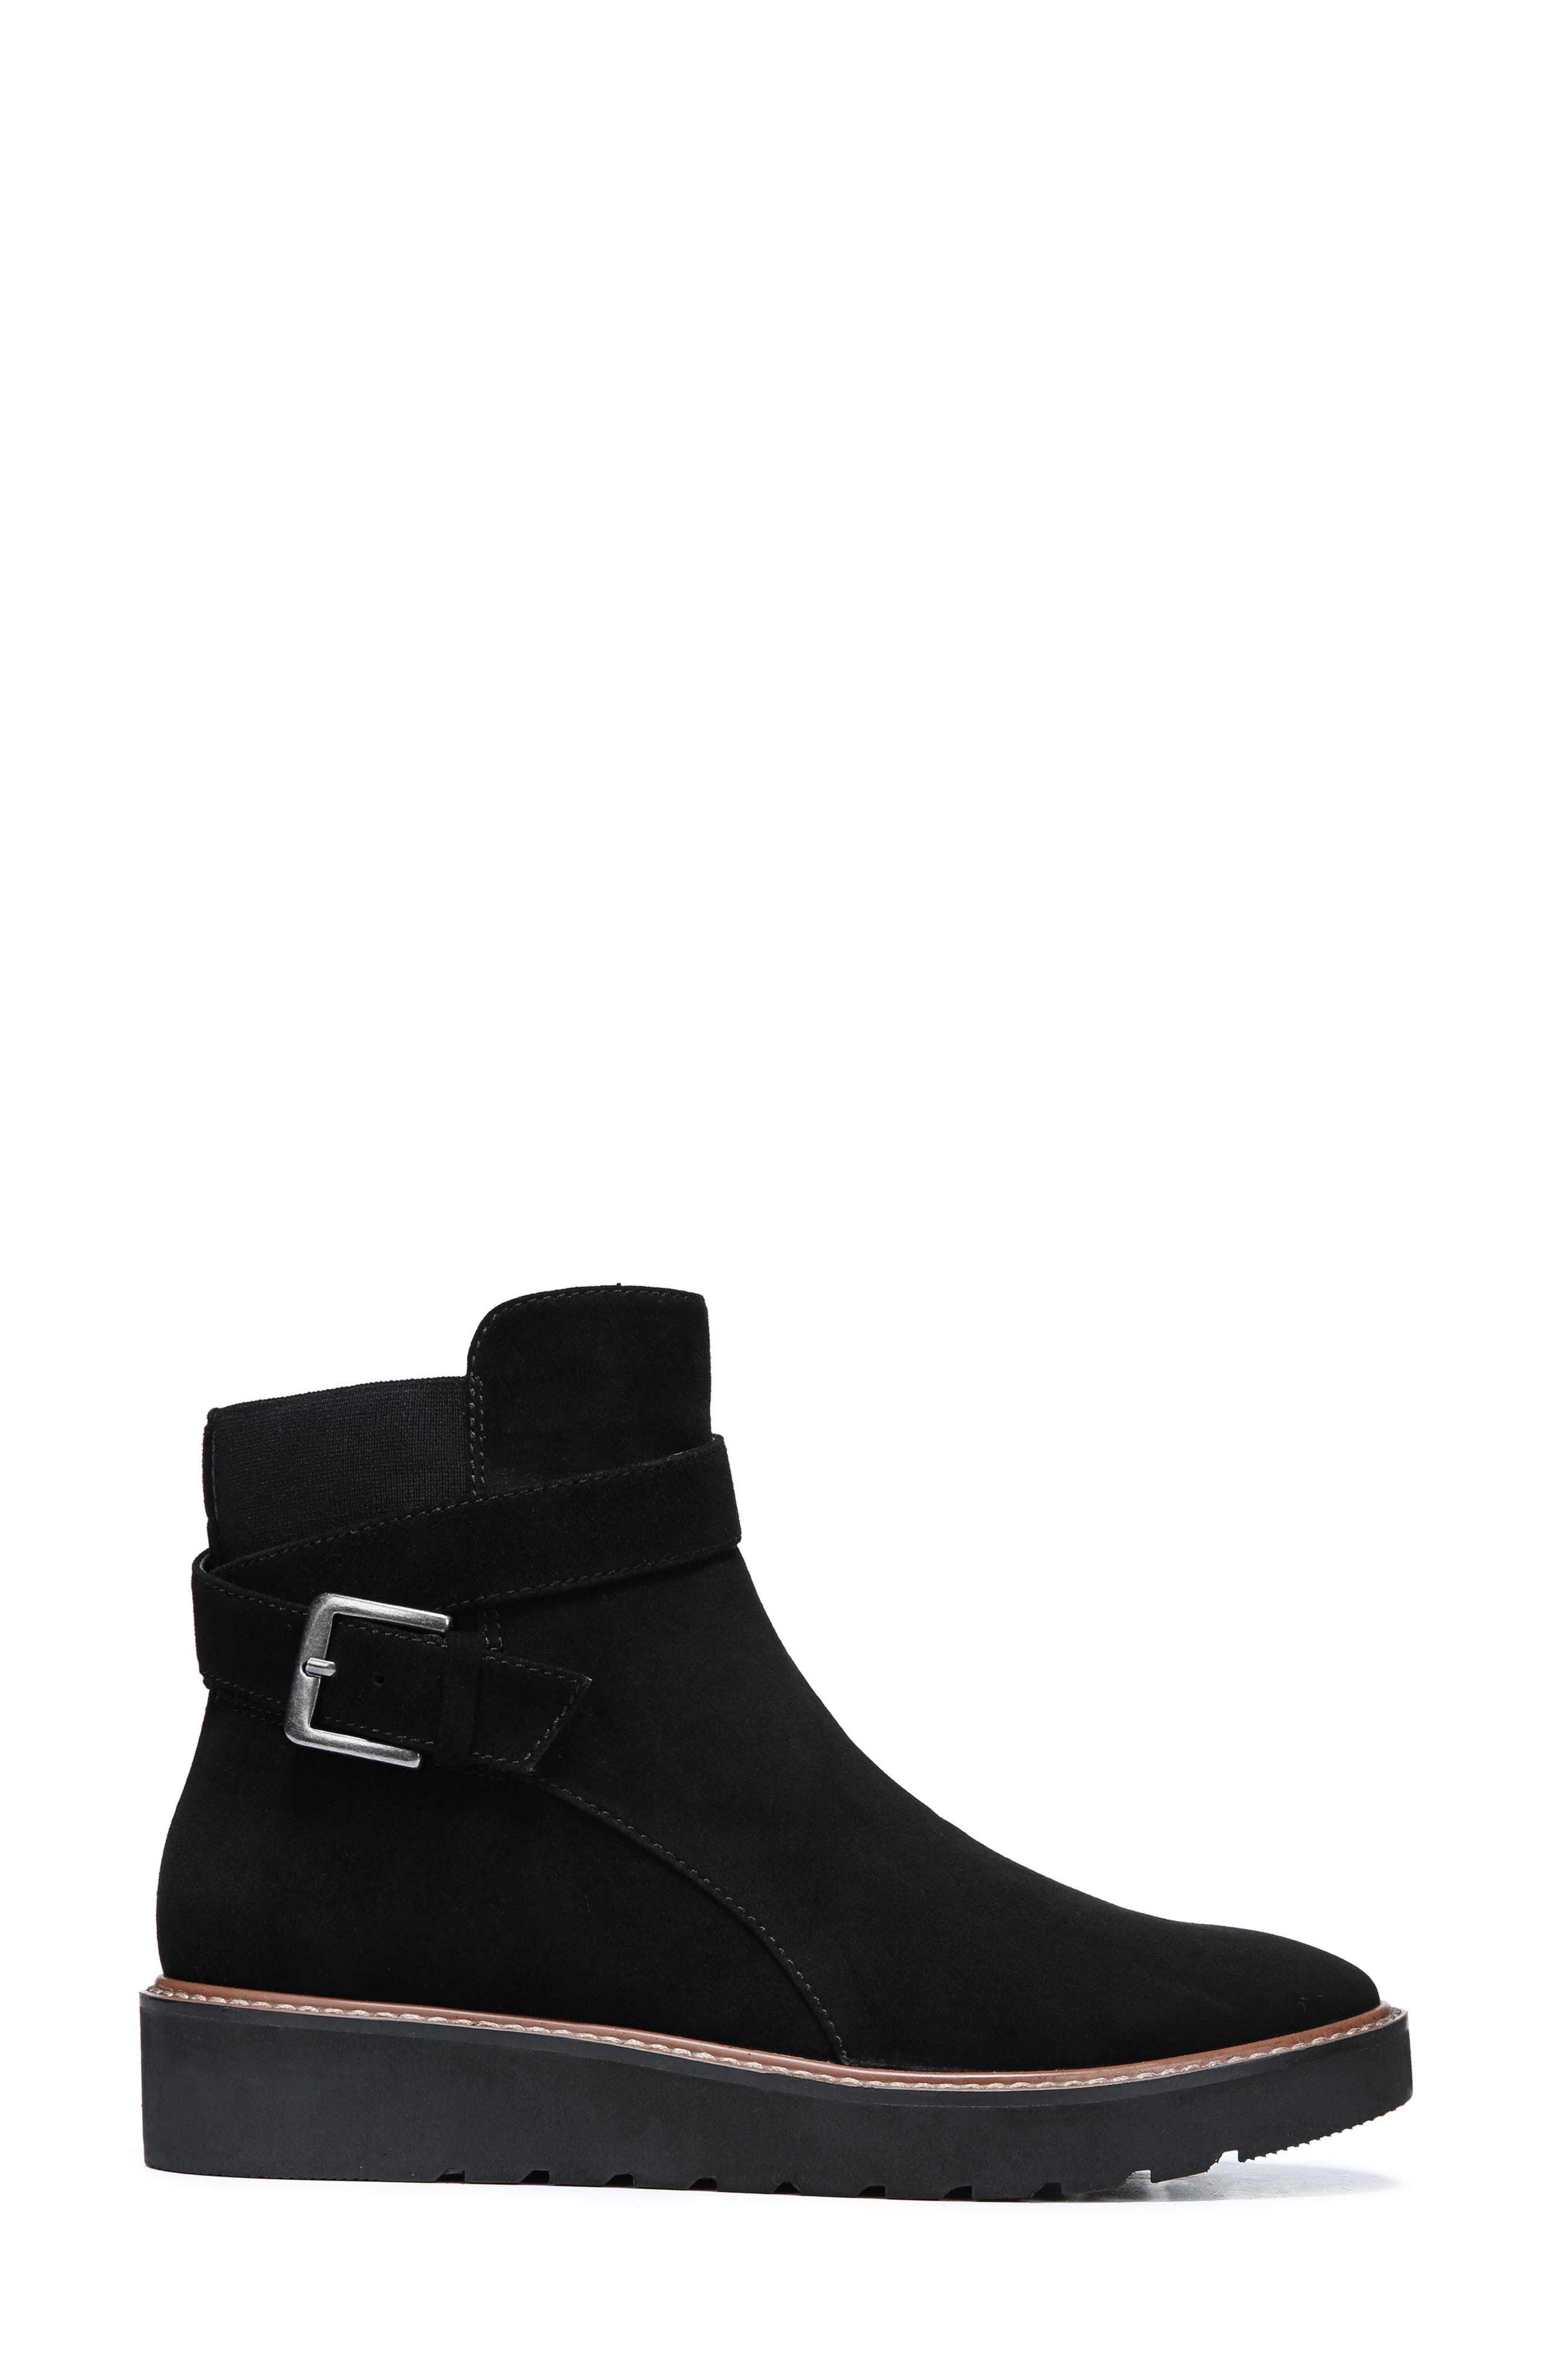 Aster Bootie,                             Alternate thumbnail 3, color,                             BLACK SUEDE